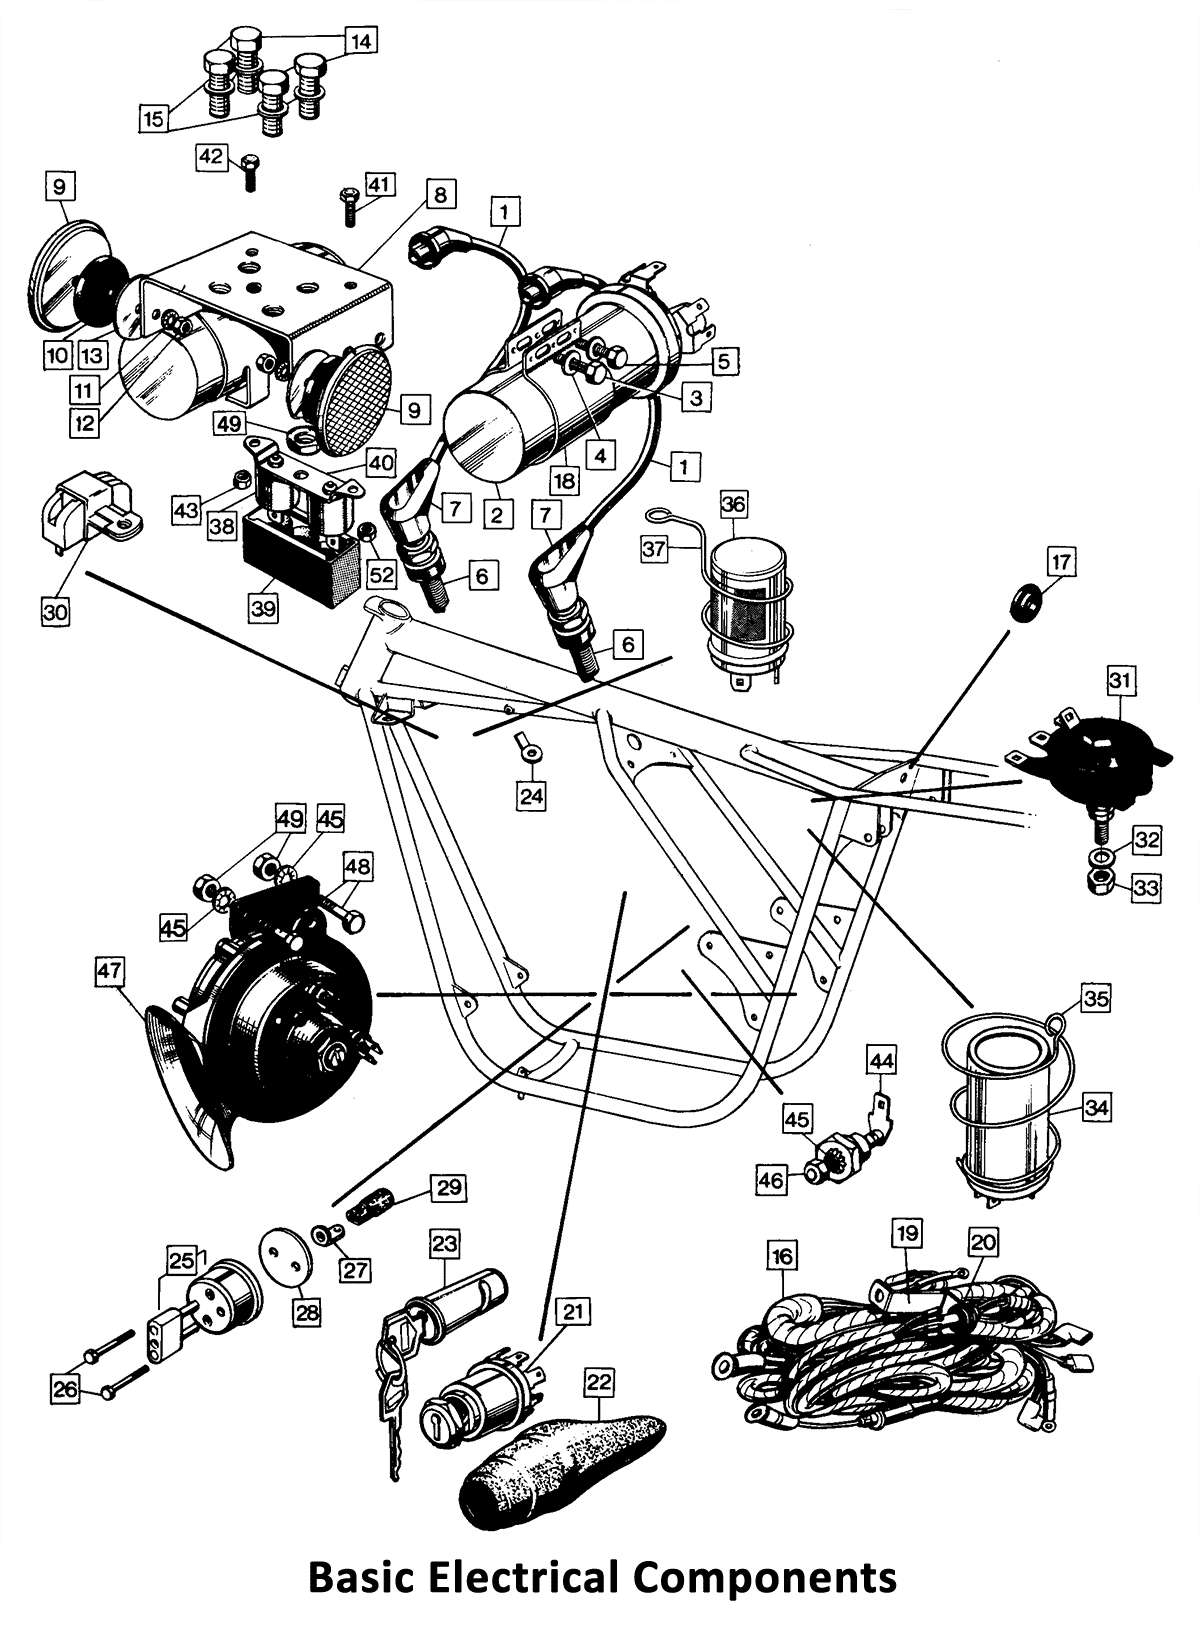 74 Norton Commando Basic Electrical Components